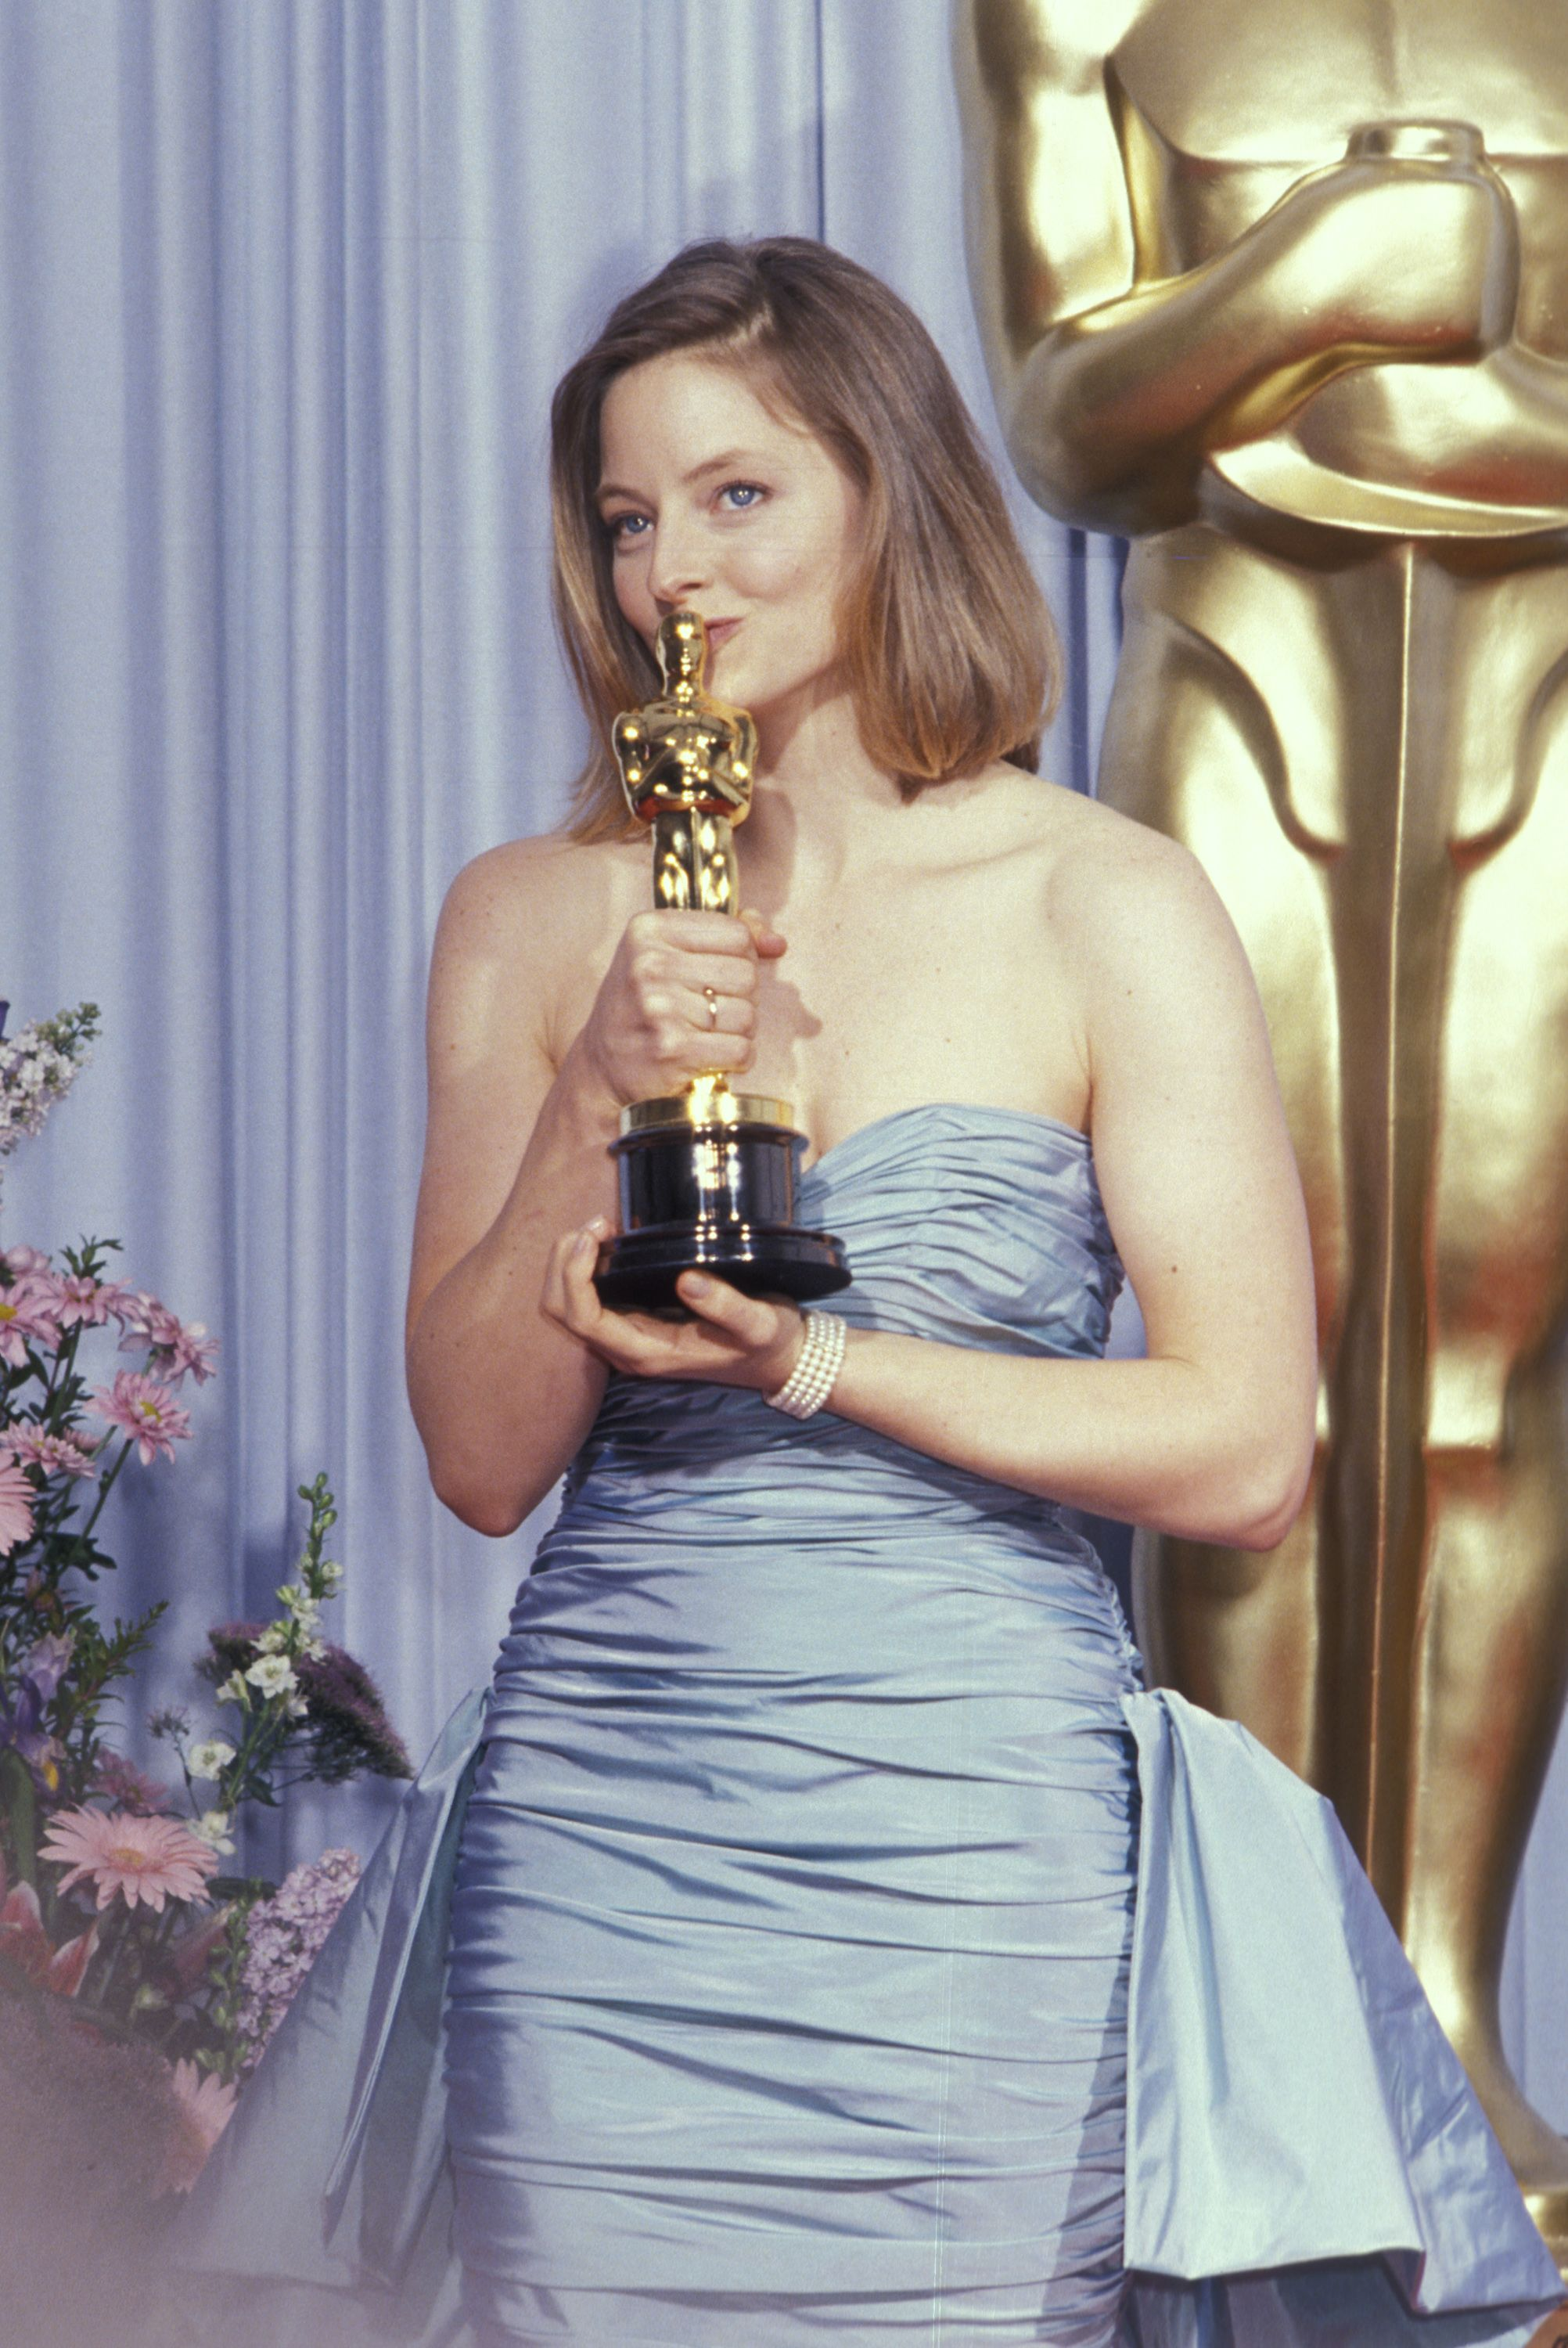 61st academy awards reg 1989 jodie foster won the best actress academy awardsreg jodie foster won the best actress oscarreg for her performance in the accused won 2 oscars another 54 wins 37 nominations